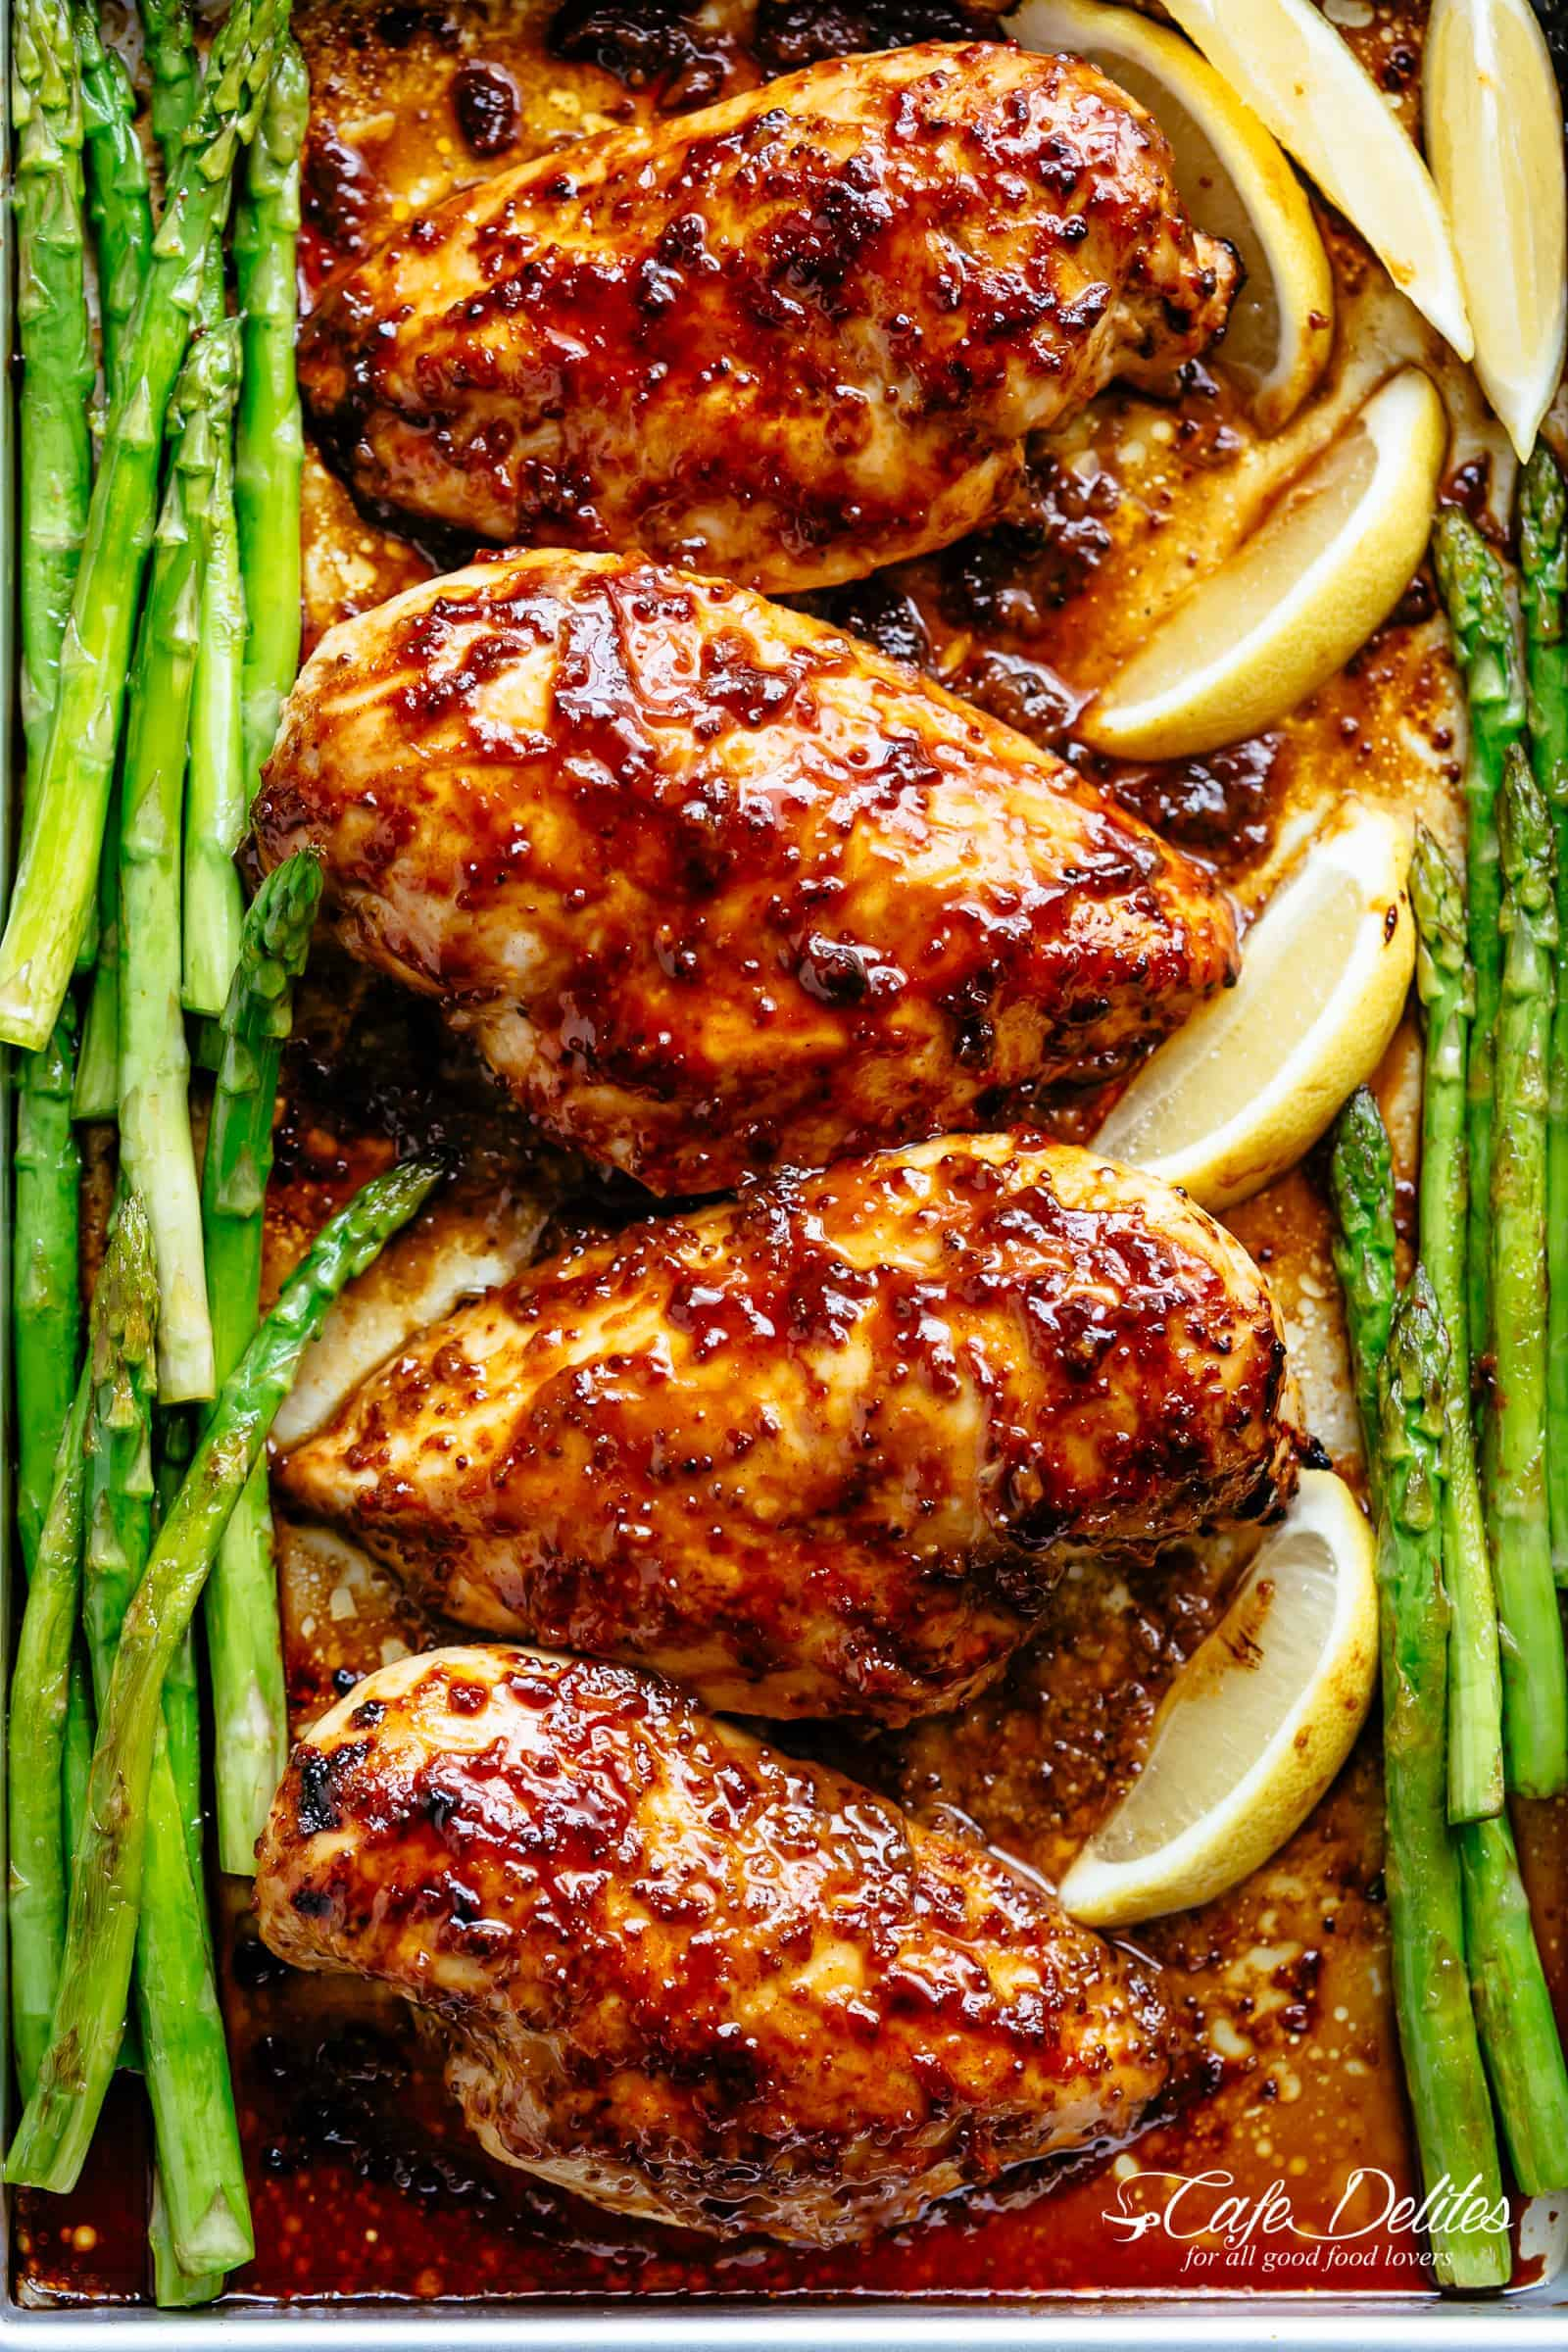 Tender and juicy Baked Chicken Breasts with a delicious honey mustard sauce with a kick of garlic and lemon juice takes only minutes to make! Baked Chicken couldn't be any easier to prepare for a quick and easy dinner idea! This will become your new favourite chicken breast recipe! | cafedelites.com